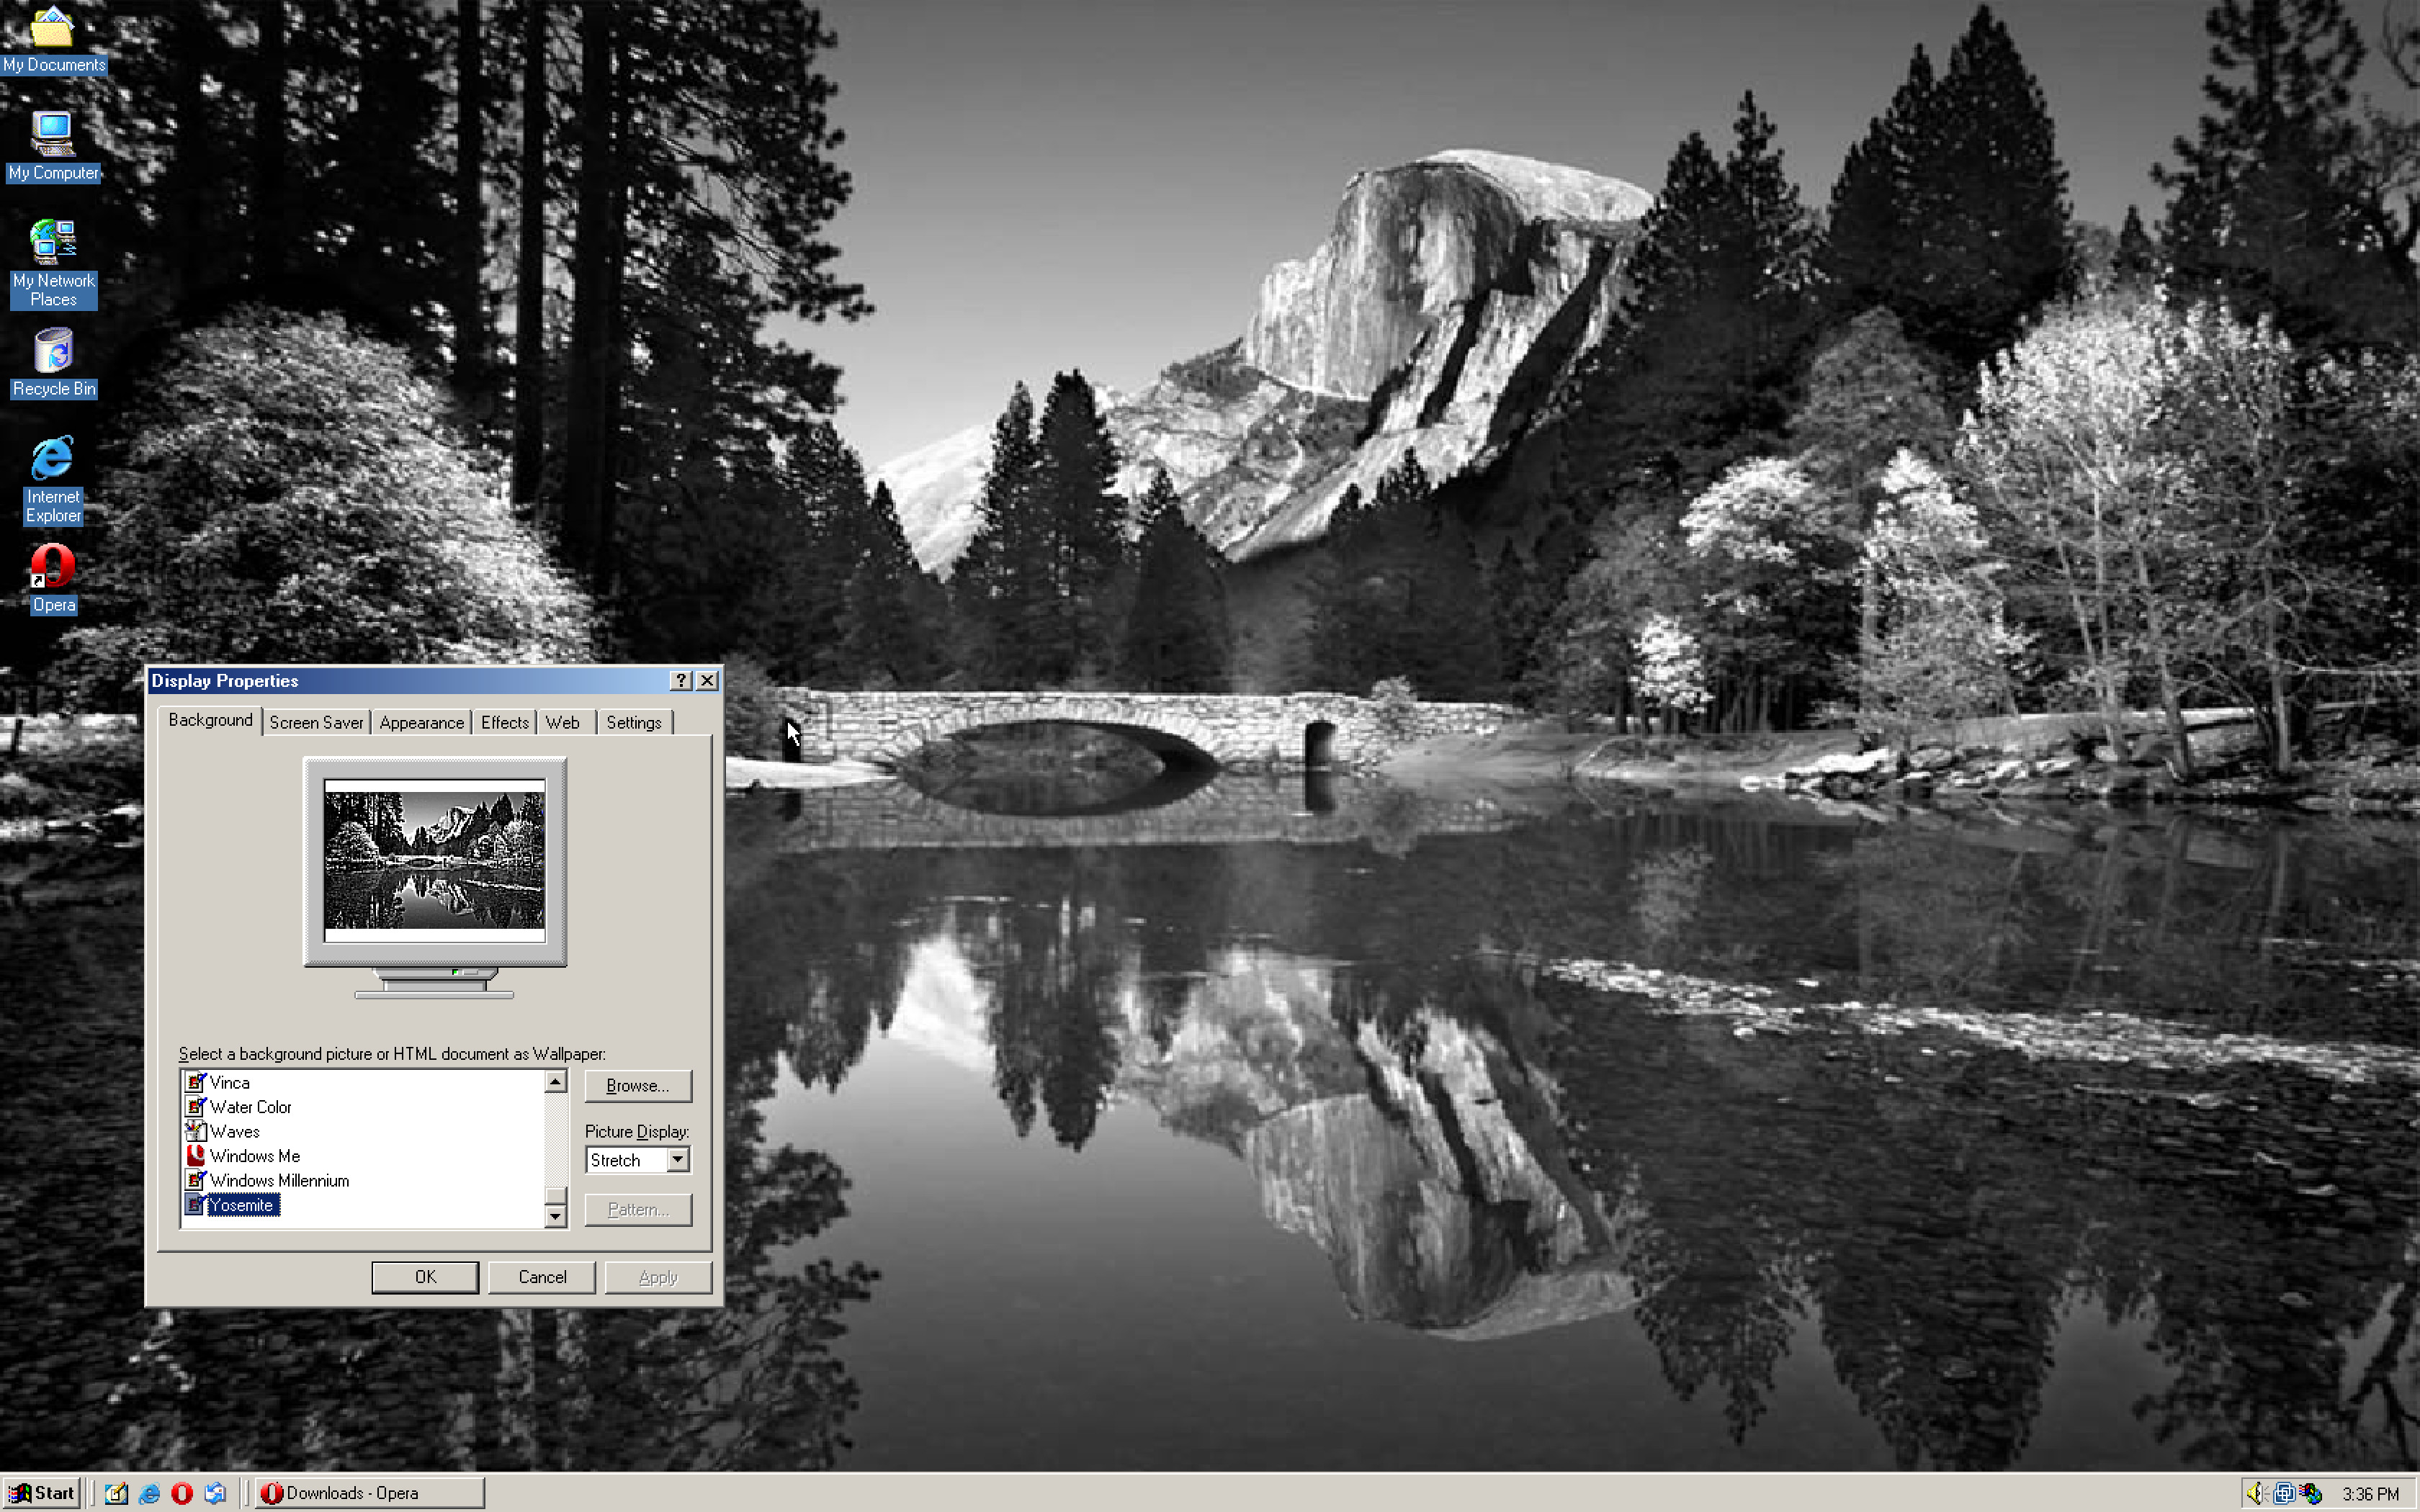 TIL there is a Yosemite wallpaper in Windows ME